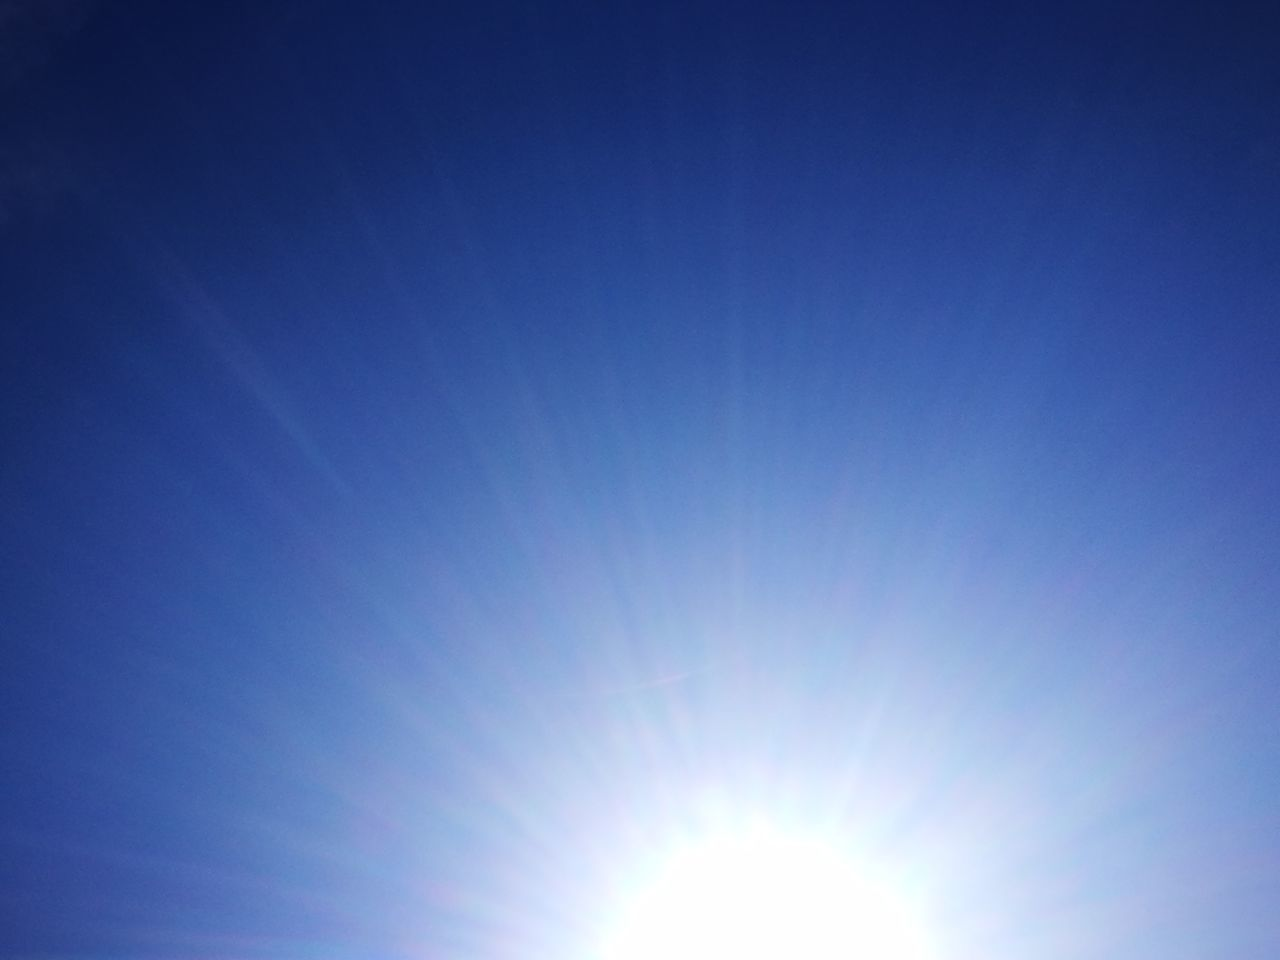 sun, sunbeam, blue, sunlight, bright, clear sky, nature, beauty in nature, scenics, no people, sky, outdoors, day, space, vapor trail, astronomy